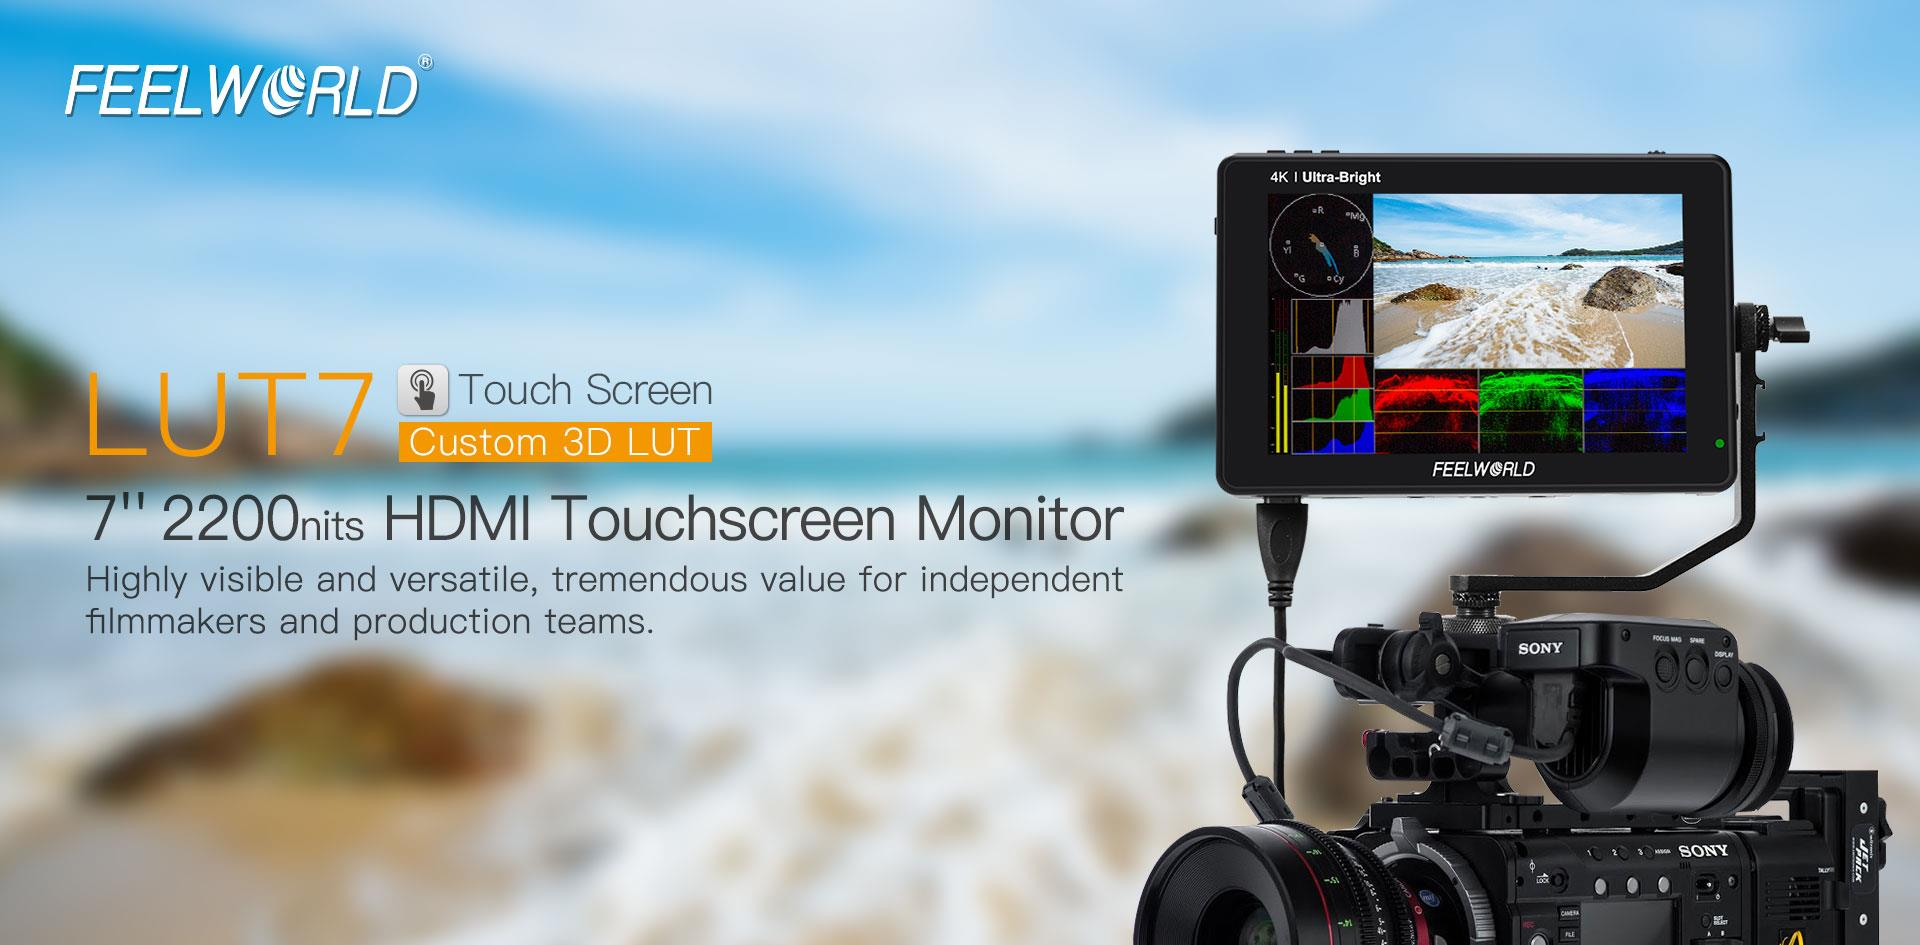 FeelWorld LUT7 7 Inch 3D LUT 2200nits 4K HDMI Touch Screen On-Camera Monitor